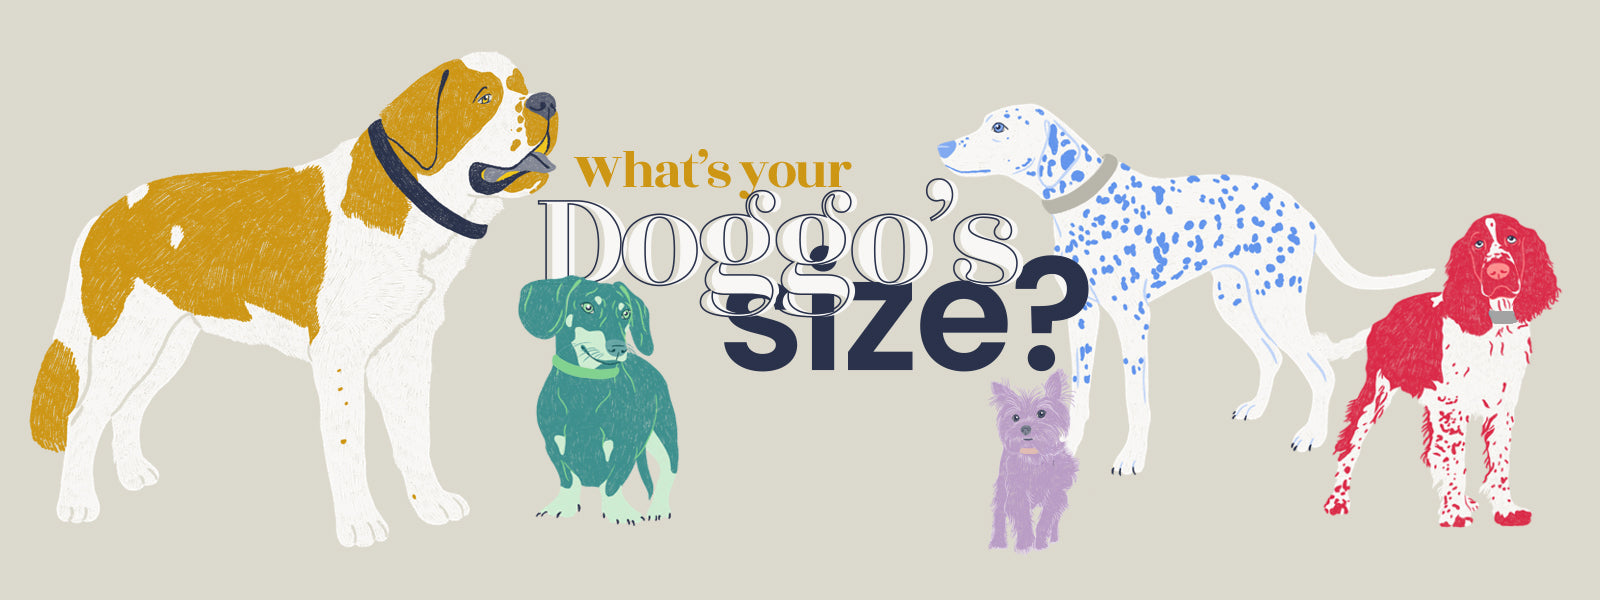 Valgray luxury dog accessory product sizing guide & sizing chart for all size dog collar blog banner. Image from The Valgray Collar Sizing Guide page.